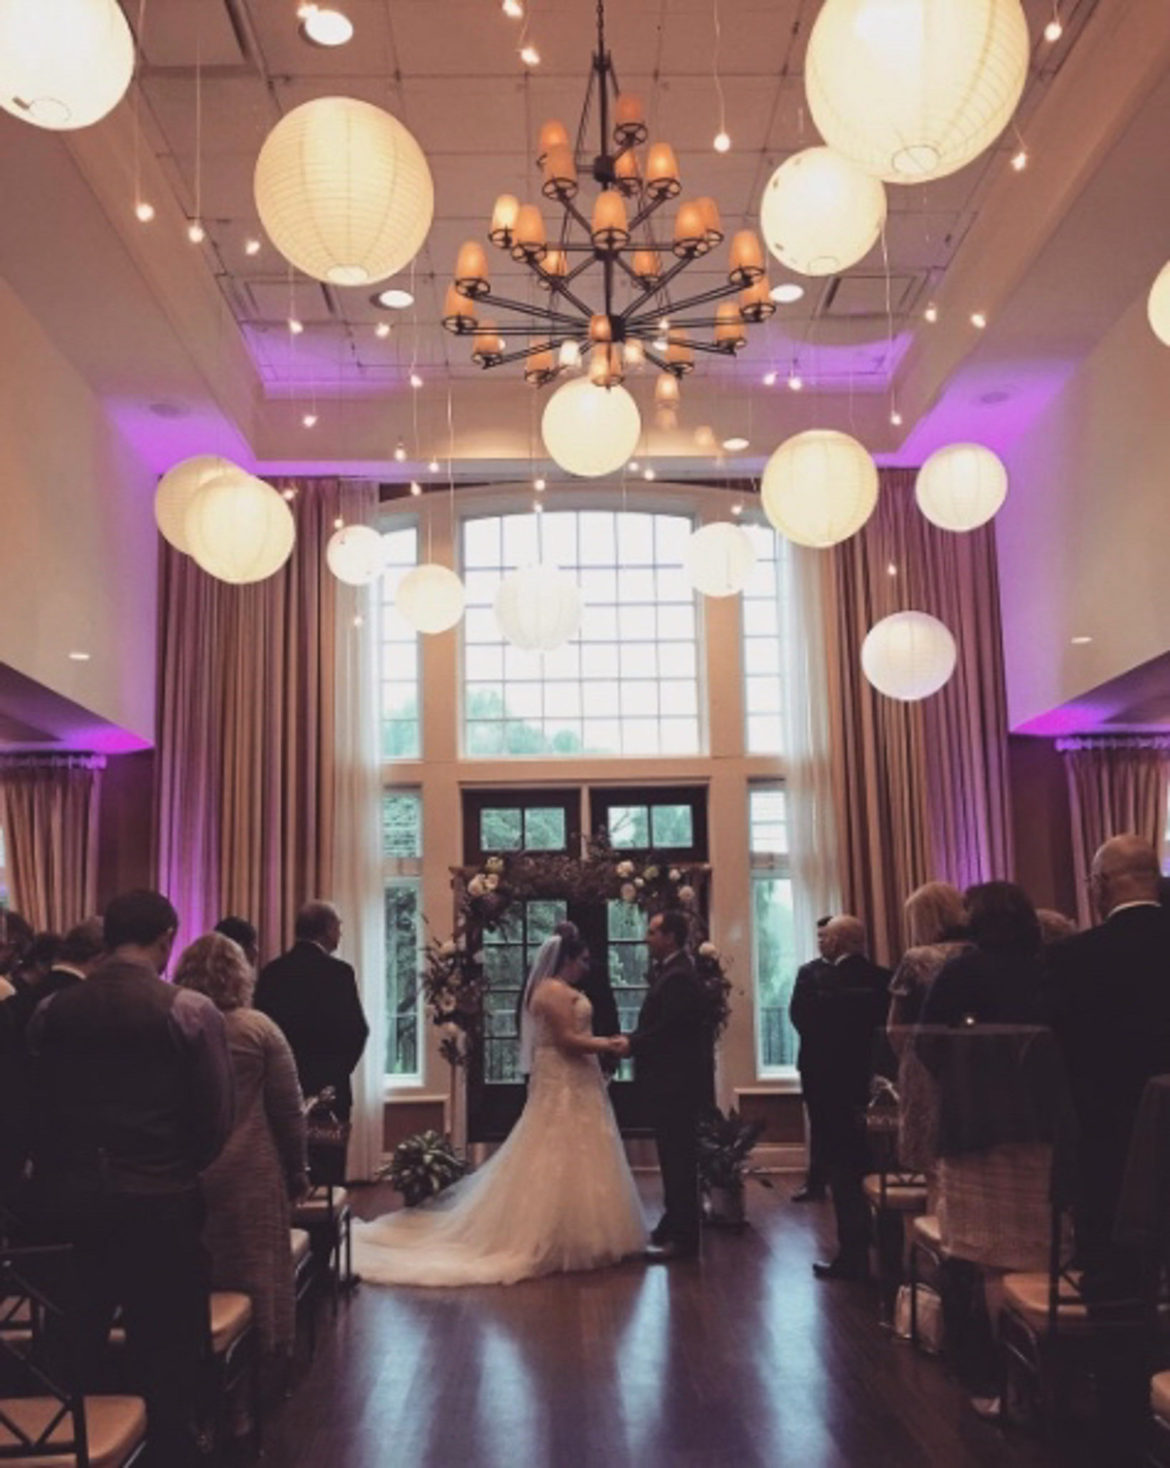 Elegant_Event_Lighting_Chicago_Arrowhead_Golf_Club_Wheaton_Wedding_Paper_Lantern_Cafe_Single_Globe_Lighting_Ceremony